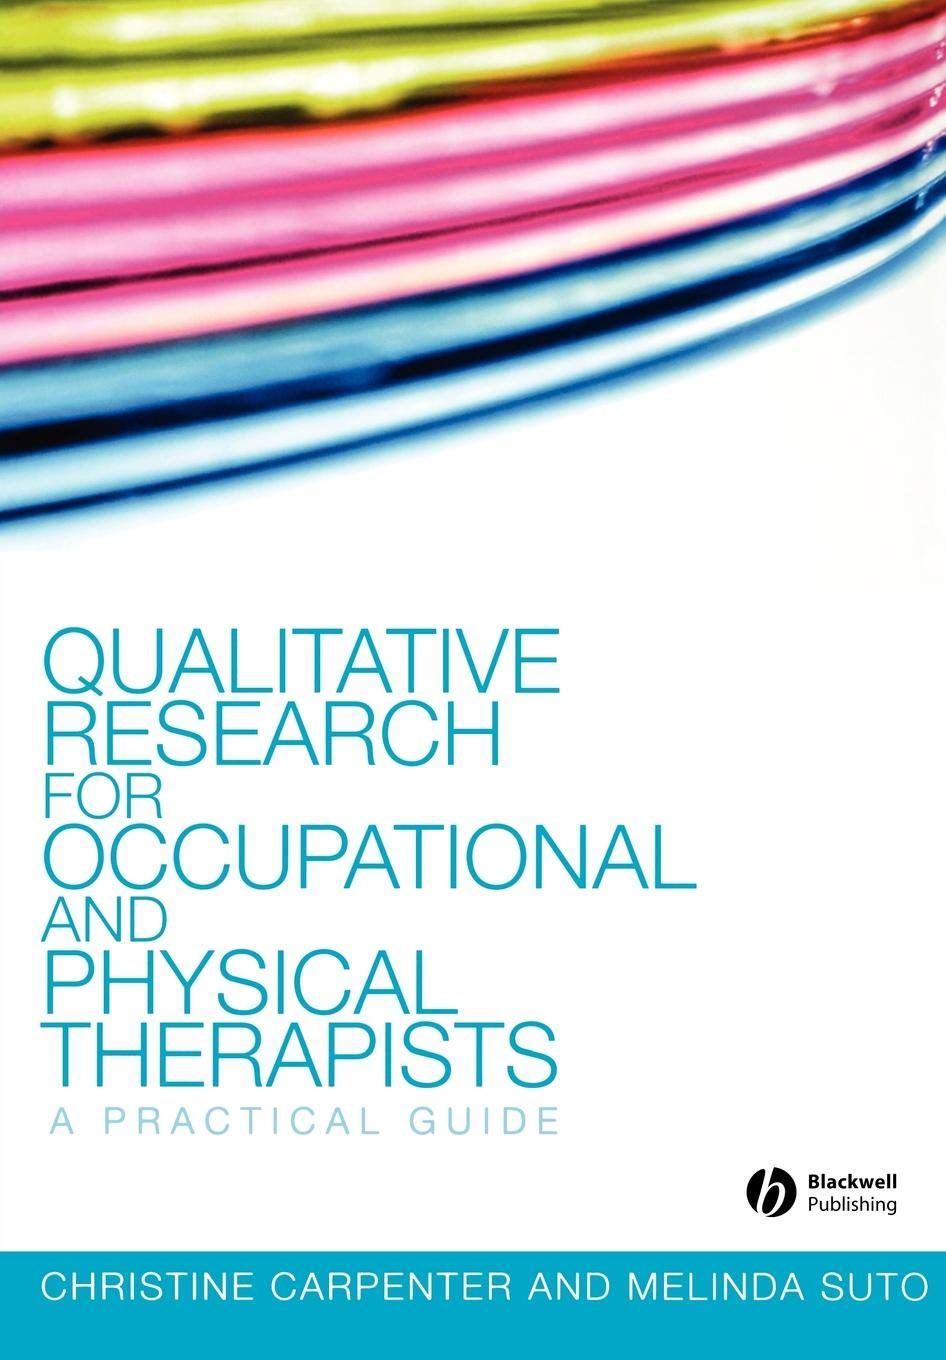 Qualitative Research For Occupational And Physical Therapists  A Practical Guide